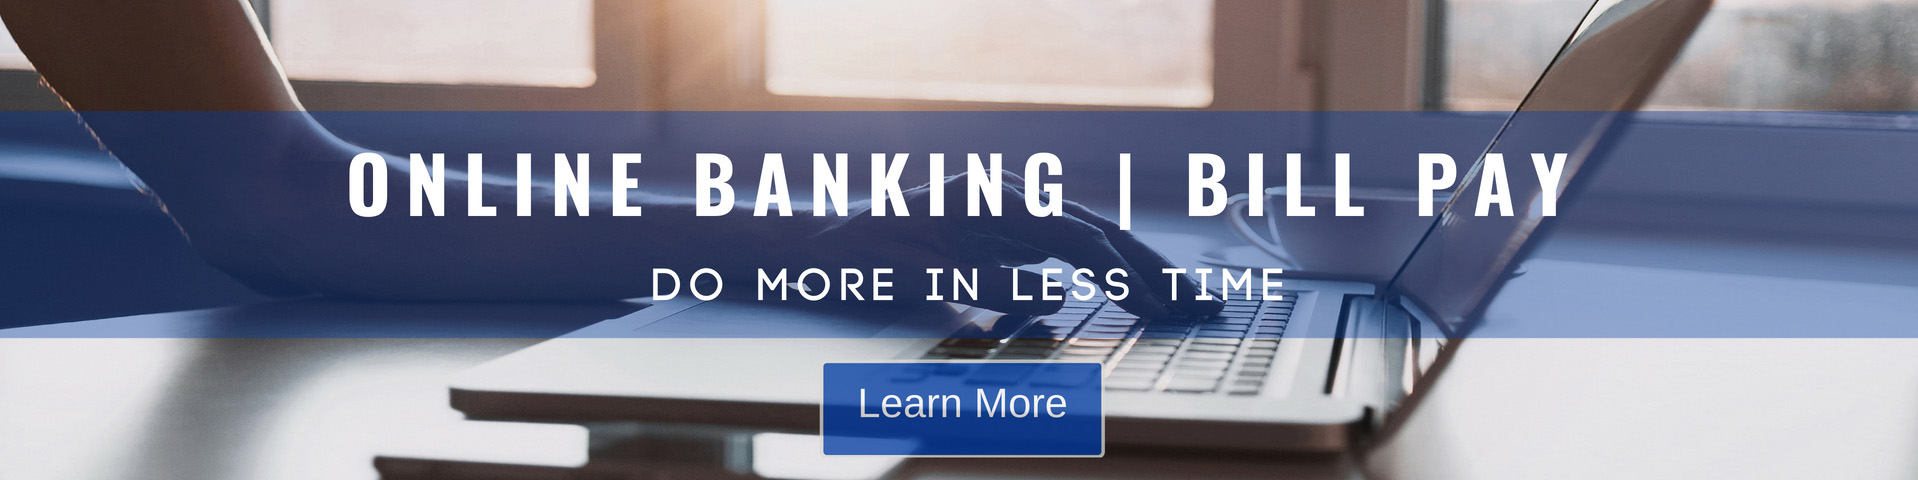 2018-07 Online Banking